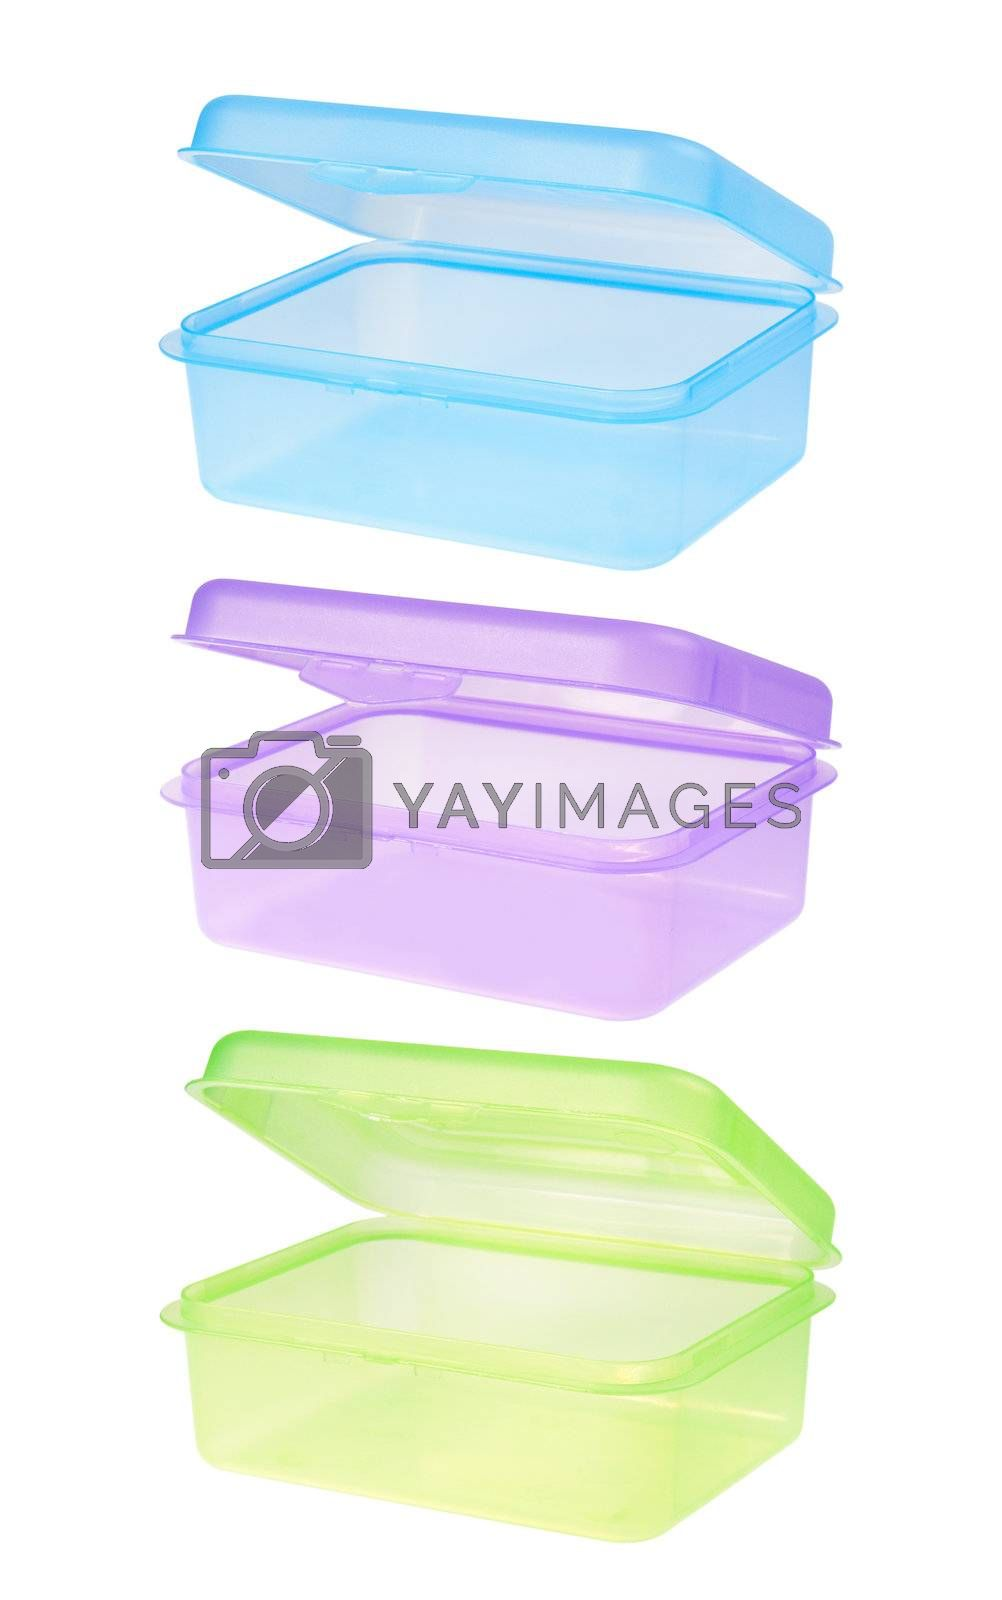 Plastic container for storing food. Blue, magenta and green. Isolated on white background